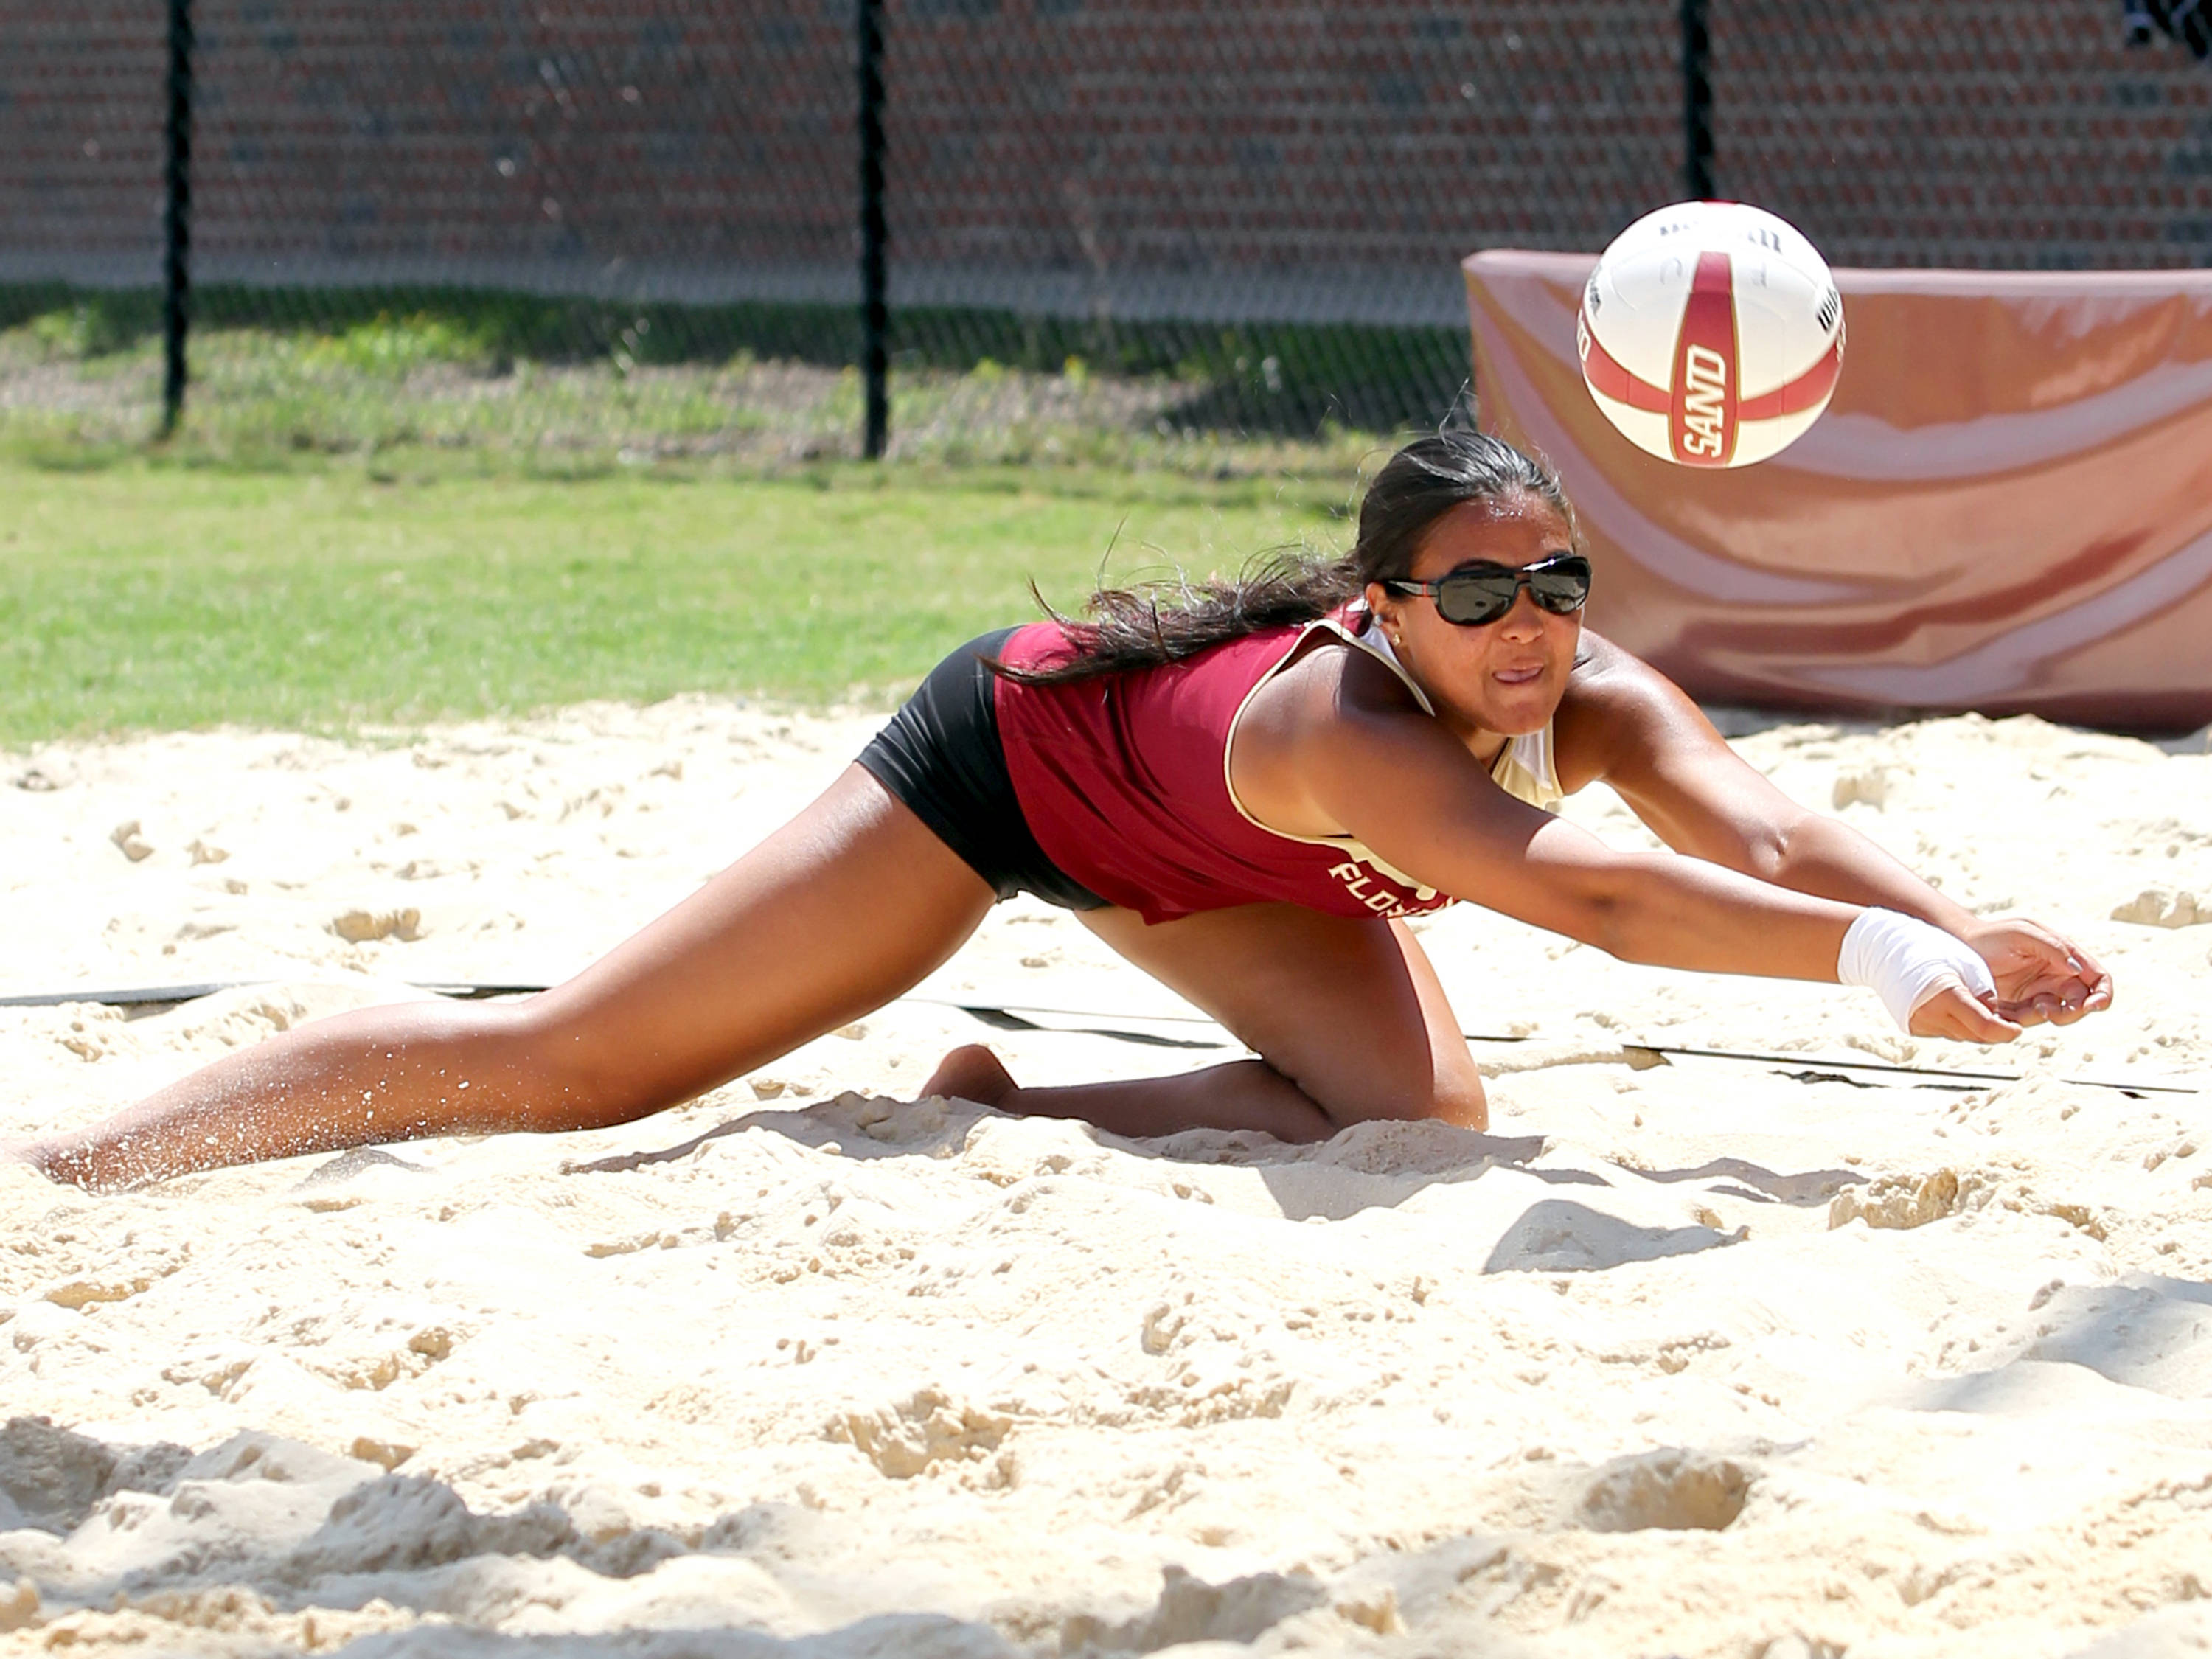 Lexy Ryan, Sand Volleyball Tournament,  04/20/13 . (Photo by Steve Musco)